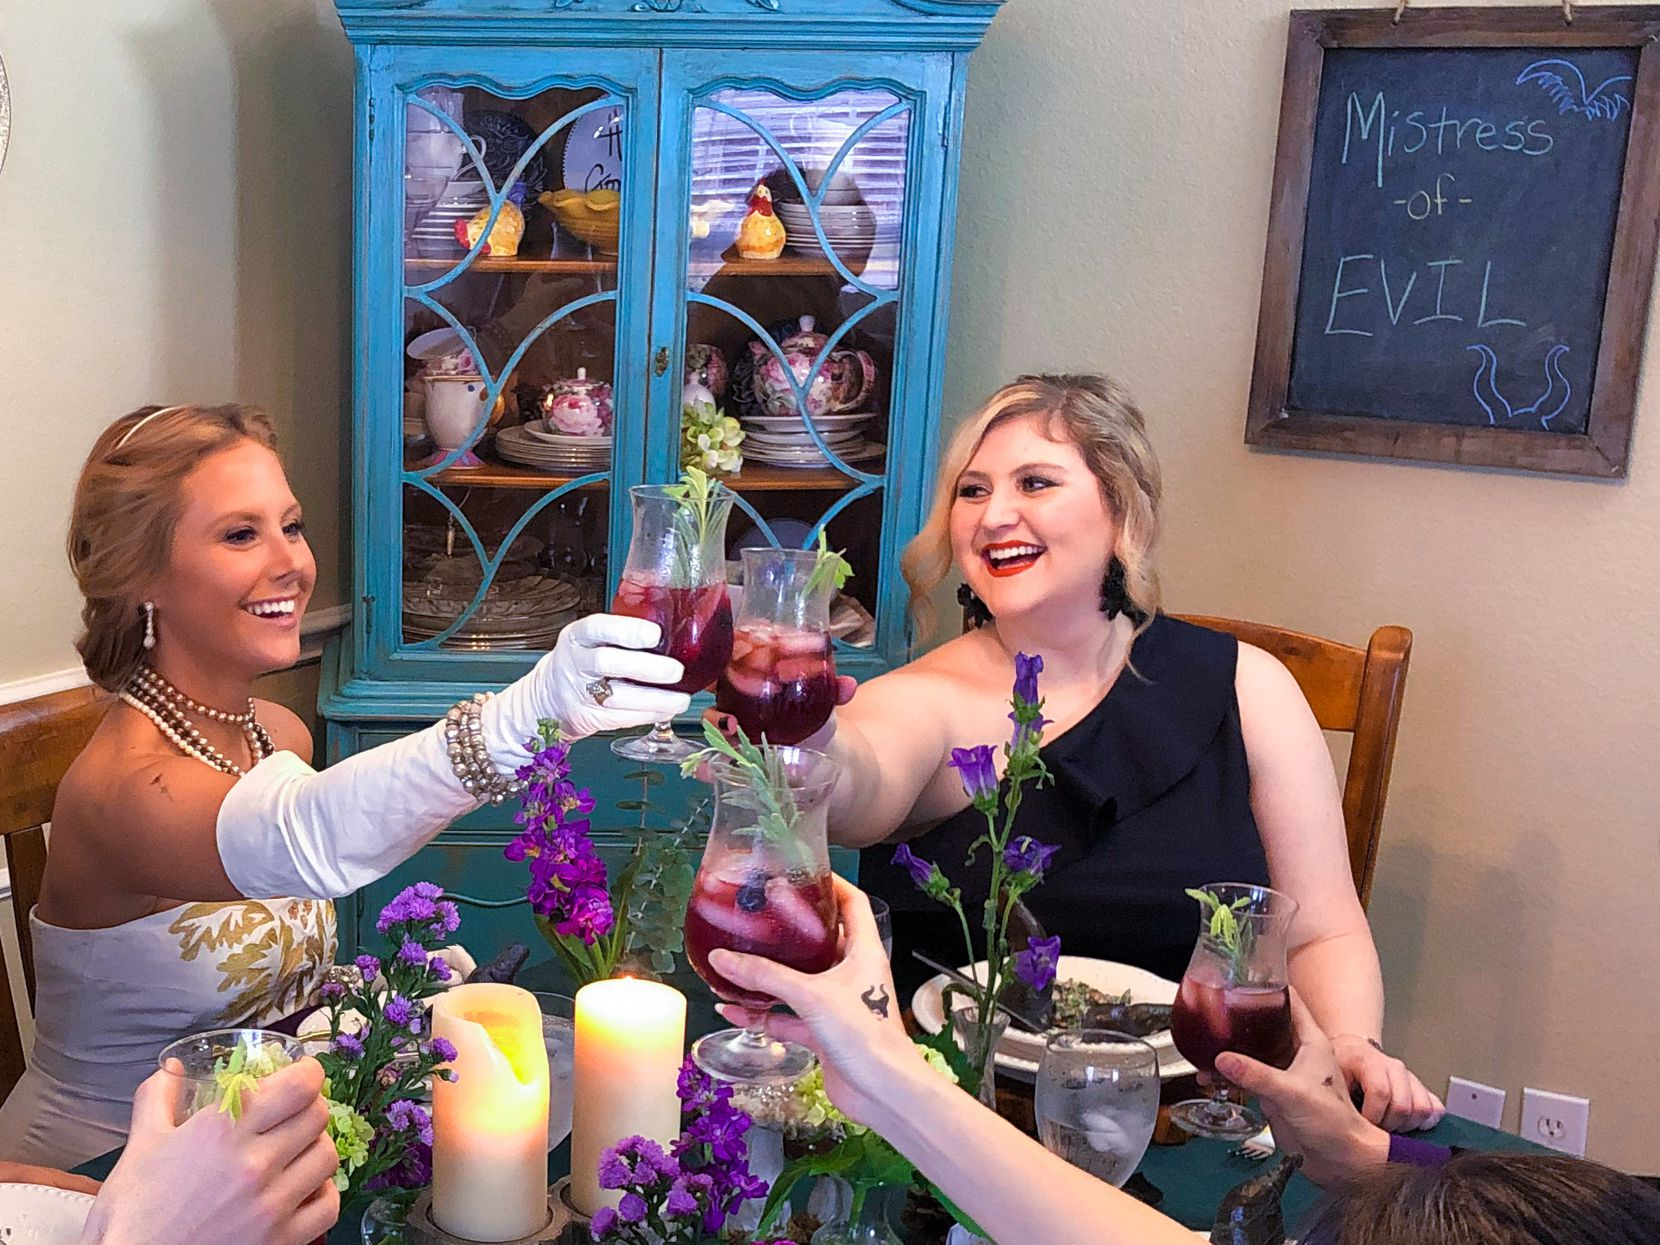 Owner of The Rose Table, Katie-Rose Watson, on right, hosts Disney-themed dinners. She hosted 12 in 12 months in 2018.